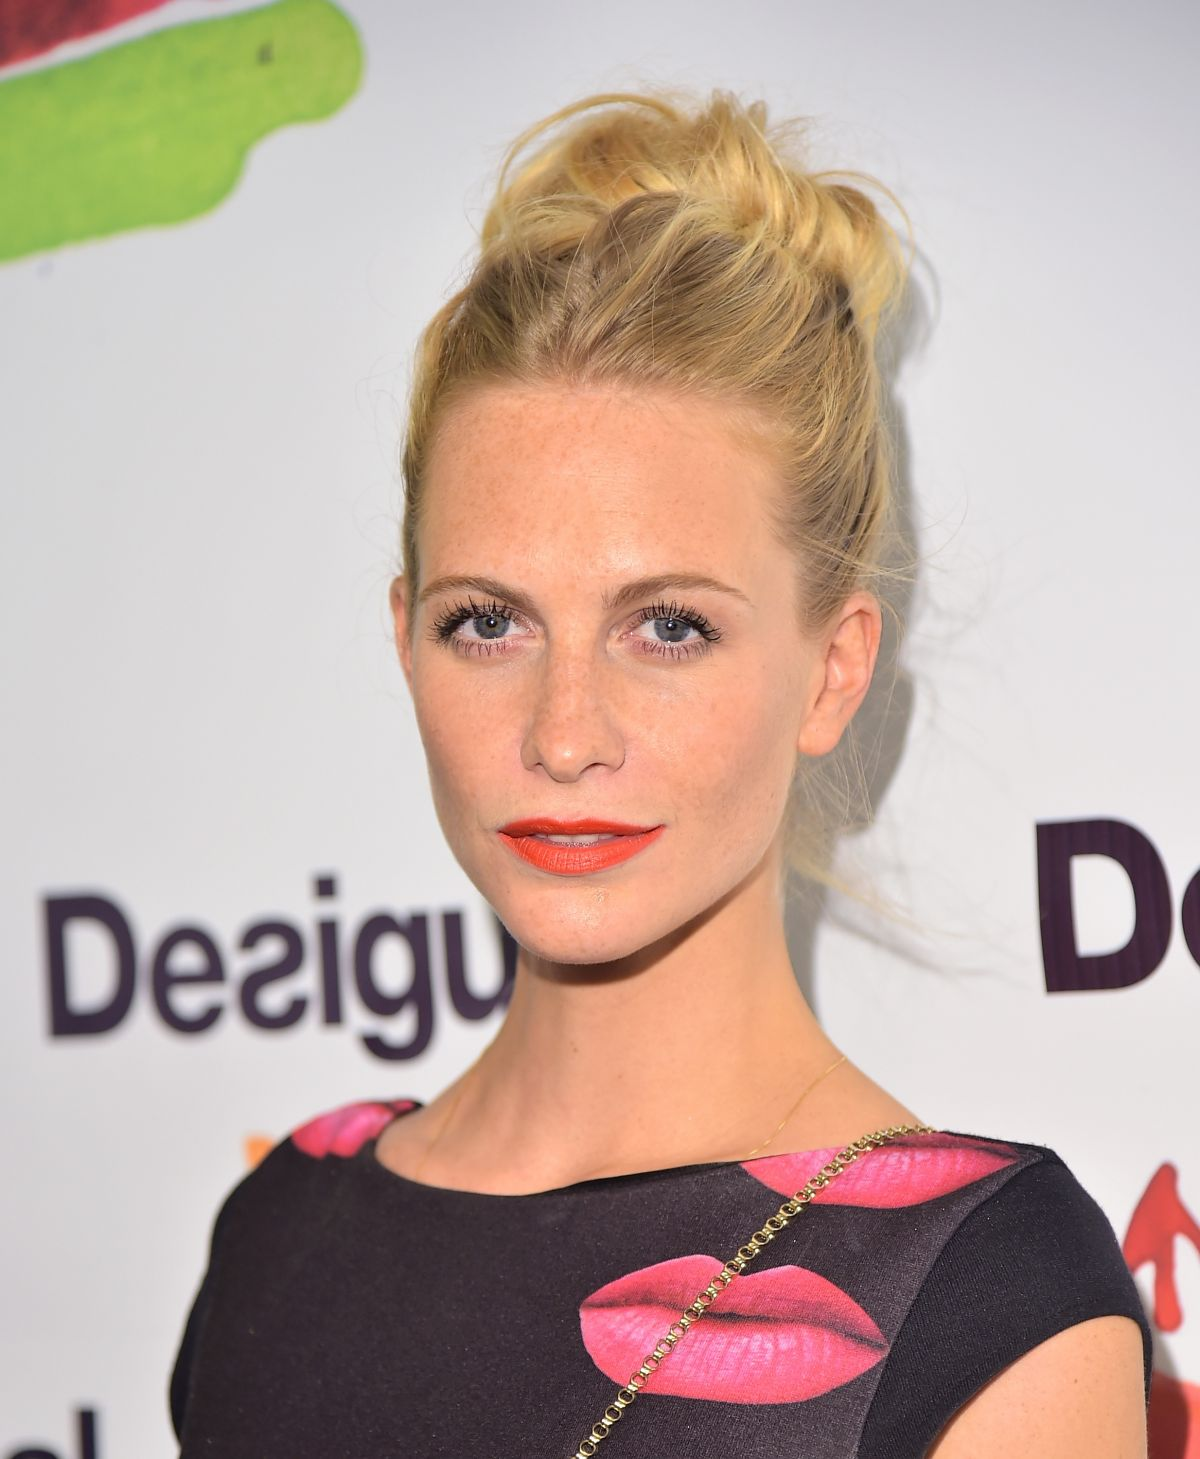 POPPY DELEVINGNE at Desigual Fashion Show in New York